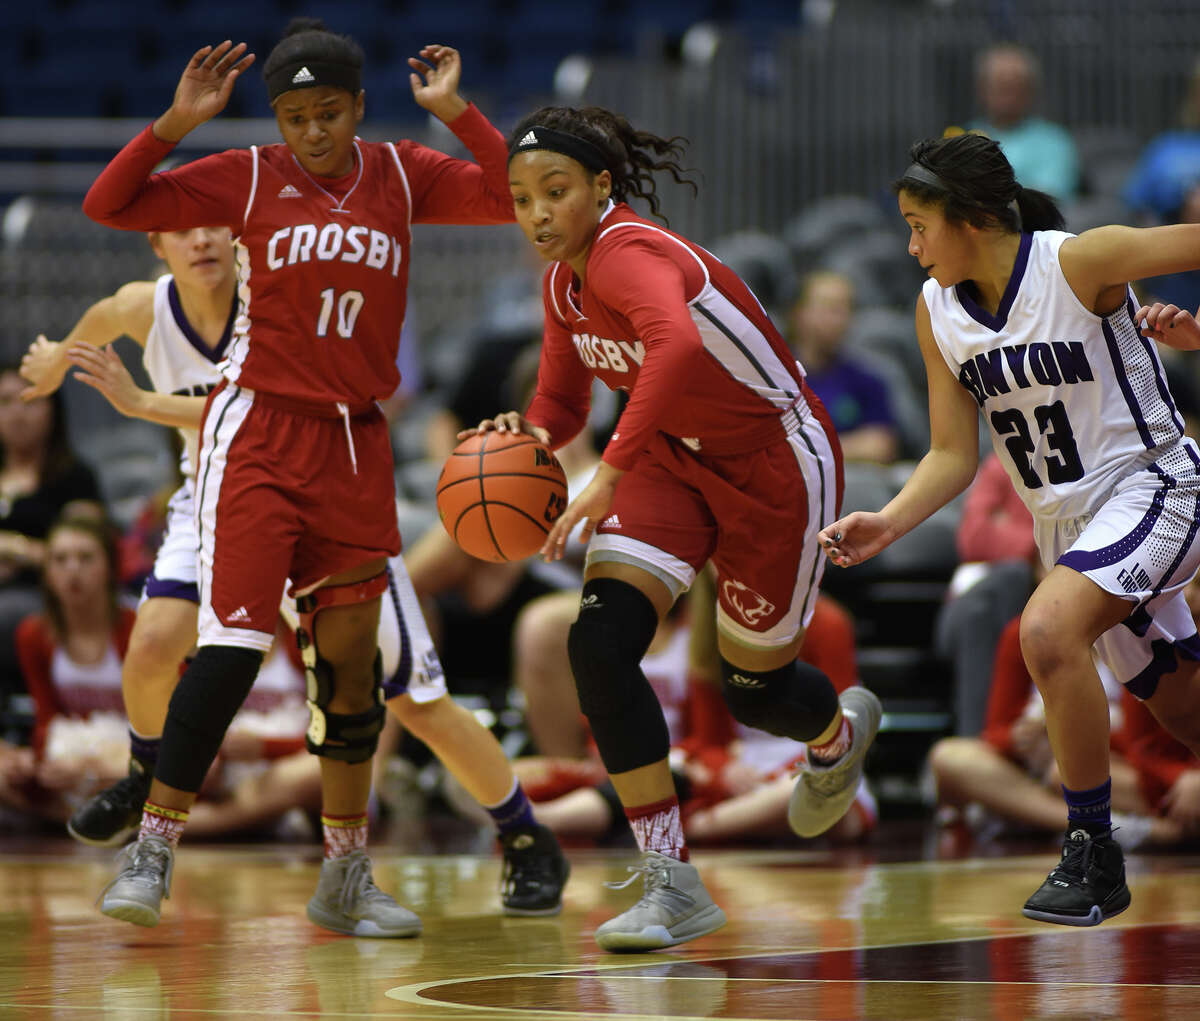 Crosby sophomore guard Paris Netherly leads a fast break against Canyon junior guard Angel Hayden (23) in the fourth quarter of their Class 5A girls basketball state semifinal at the Alamodome in San Antonio on Thursday, Mar. 3, 2016. (Photo by Jerry Baker/Freelance)